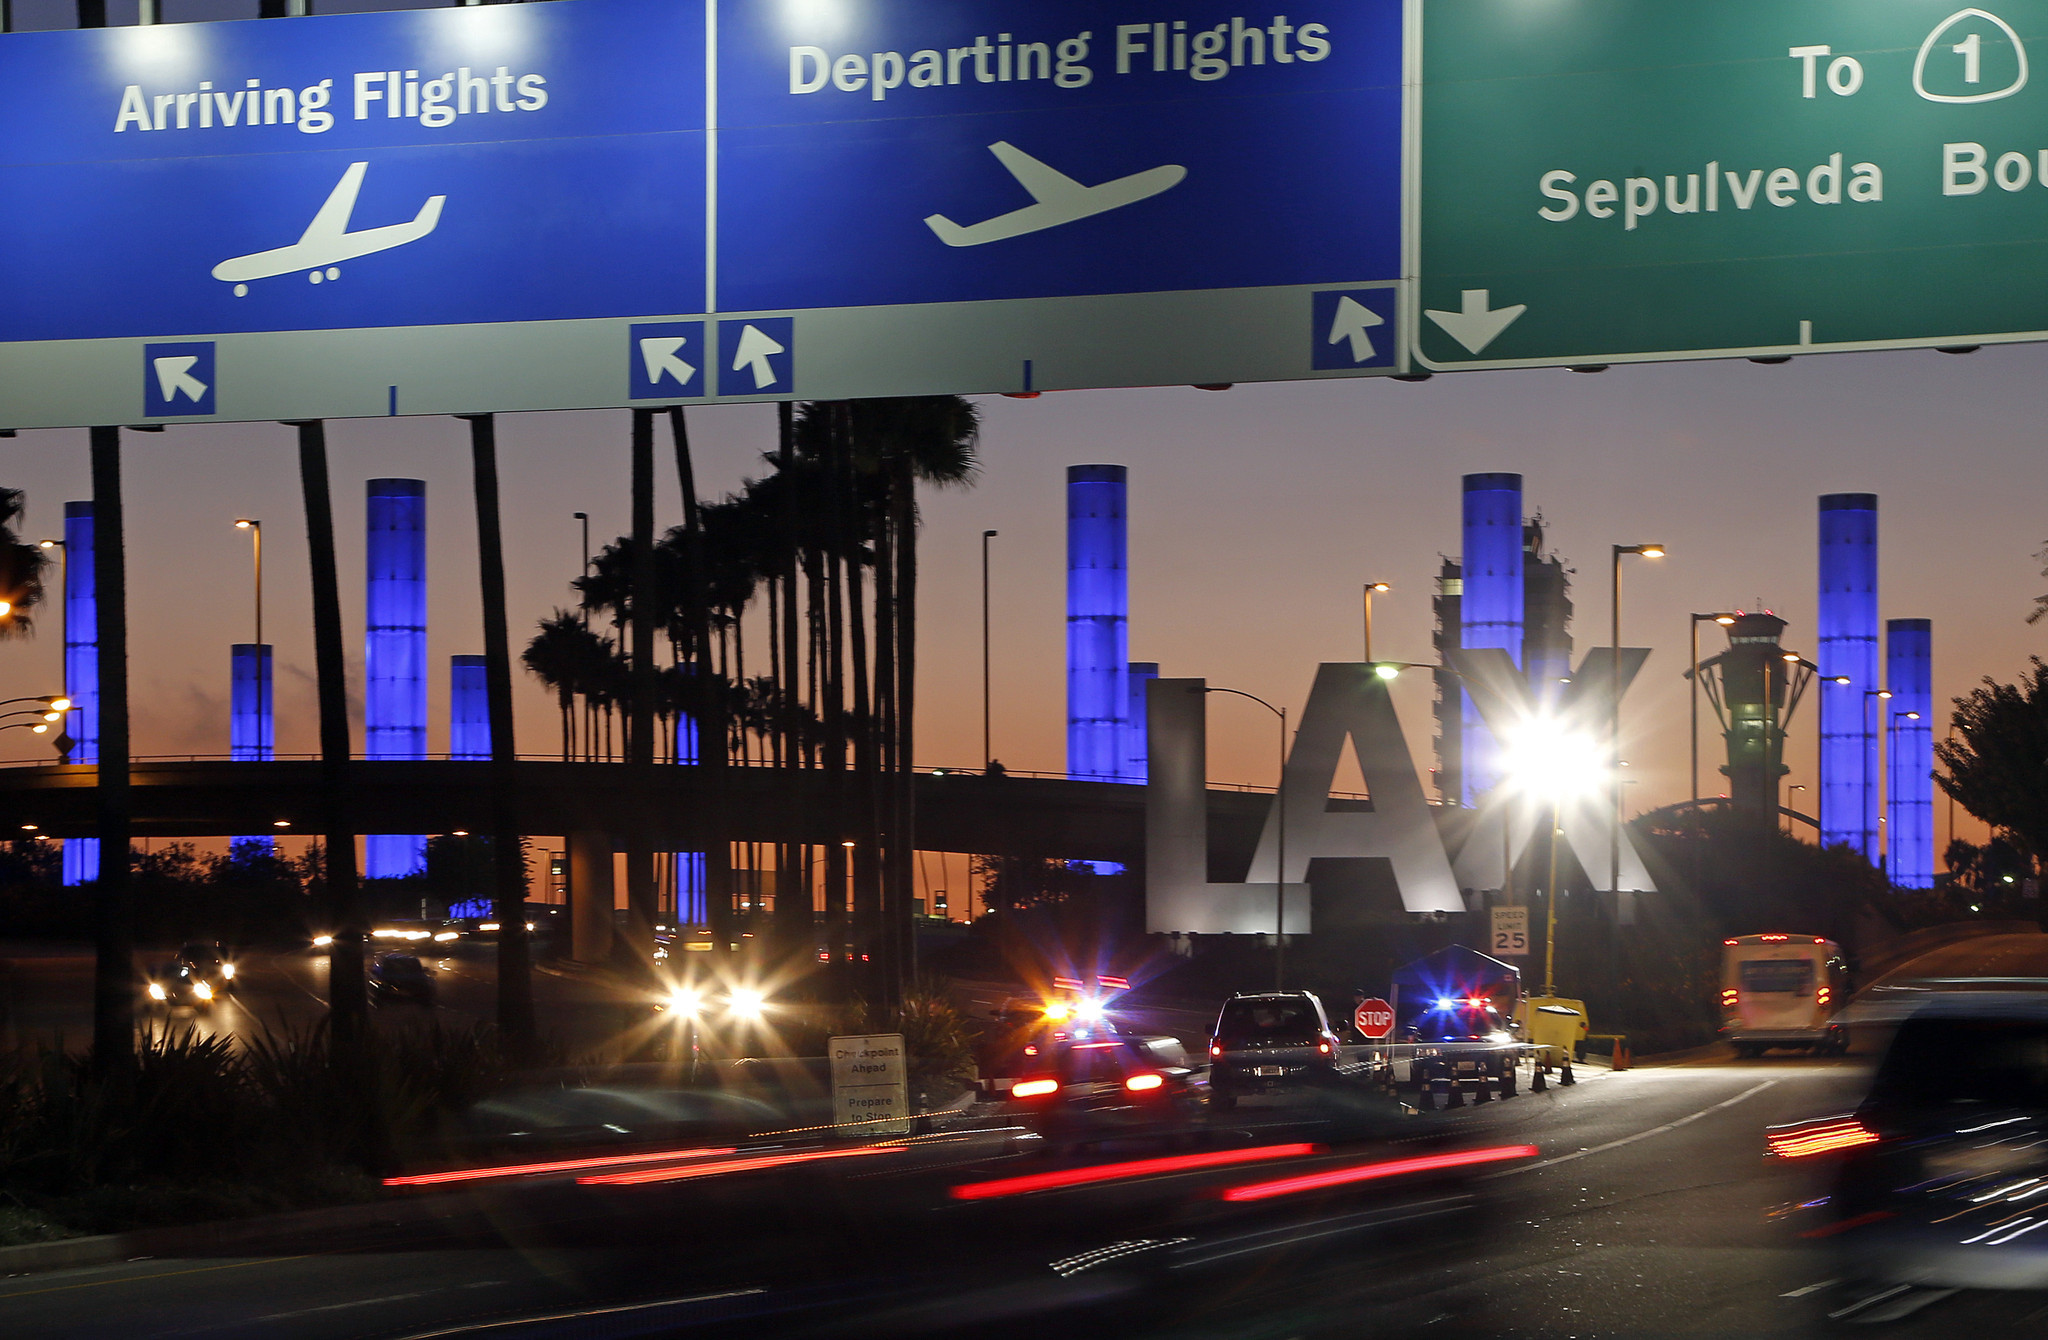 meet and assist lax airport